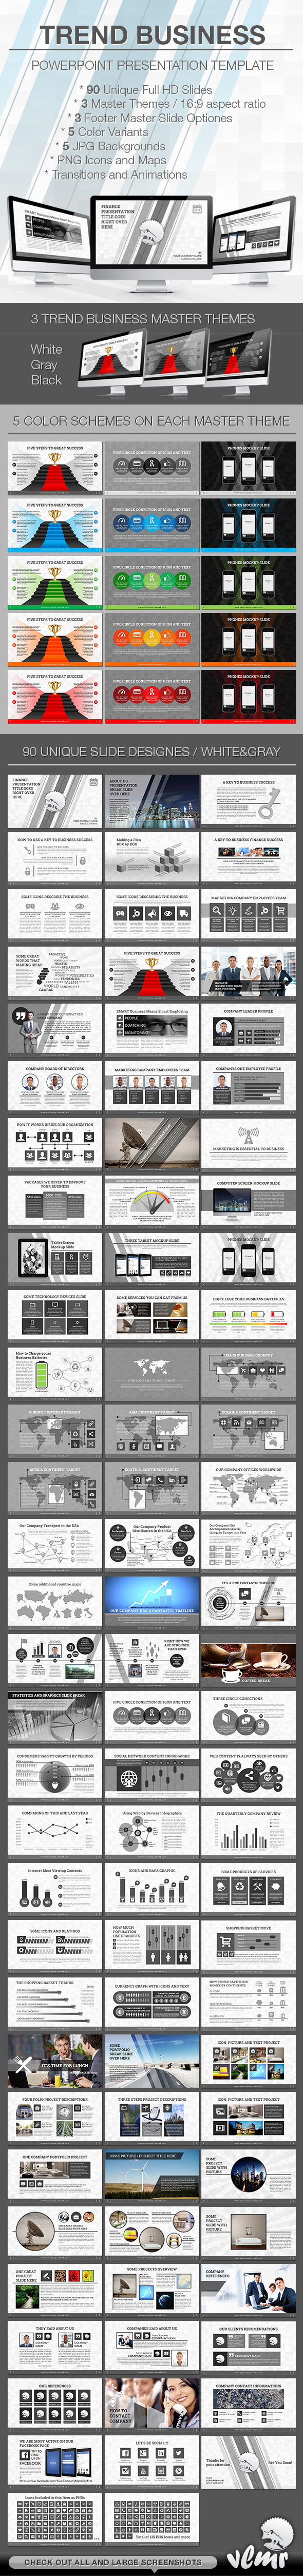 Trend Business PowerPoint Presentation Template - Creative PowerPoint Templates